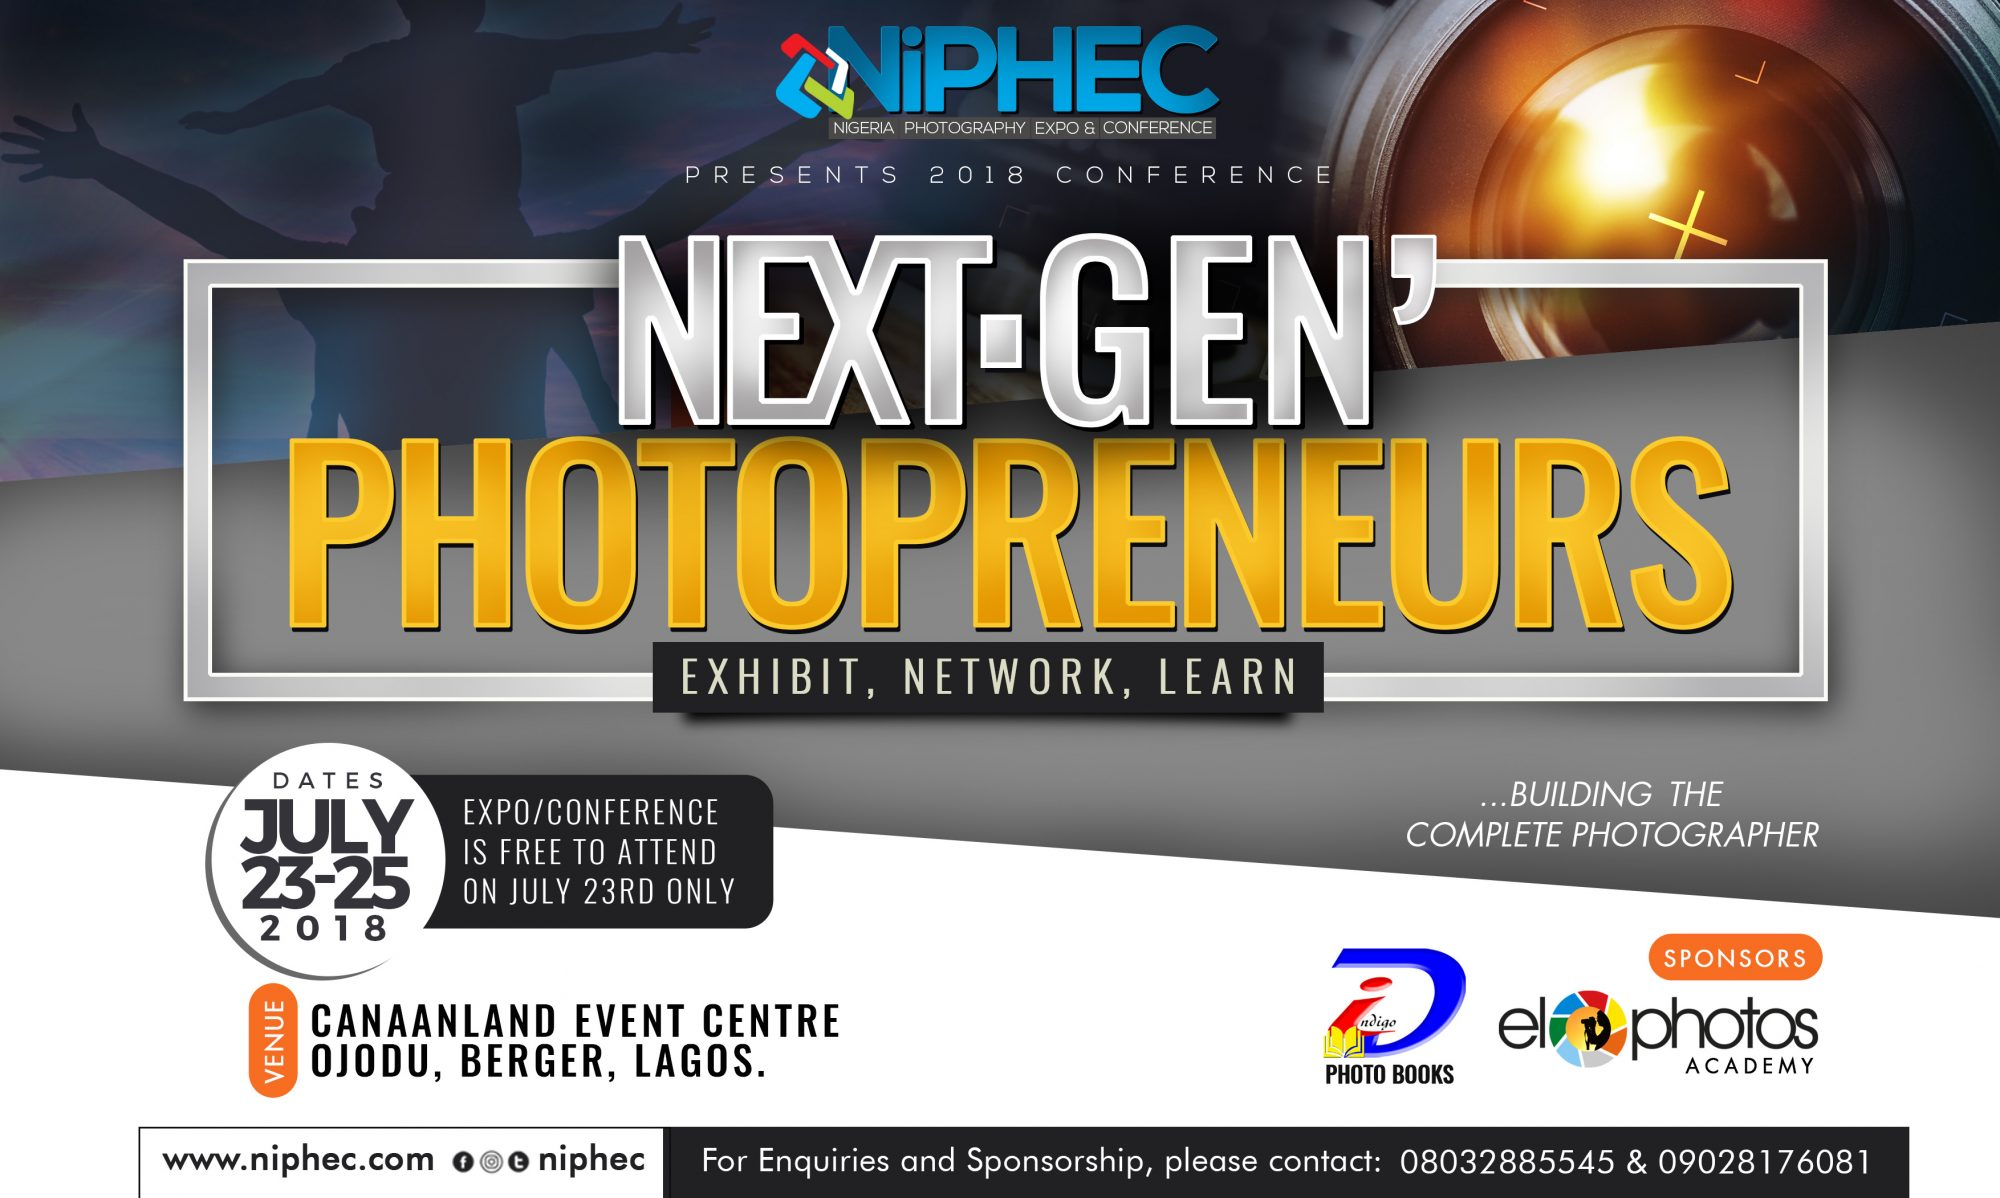 Nigeria Photography Expo & Conference 2018